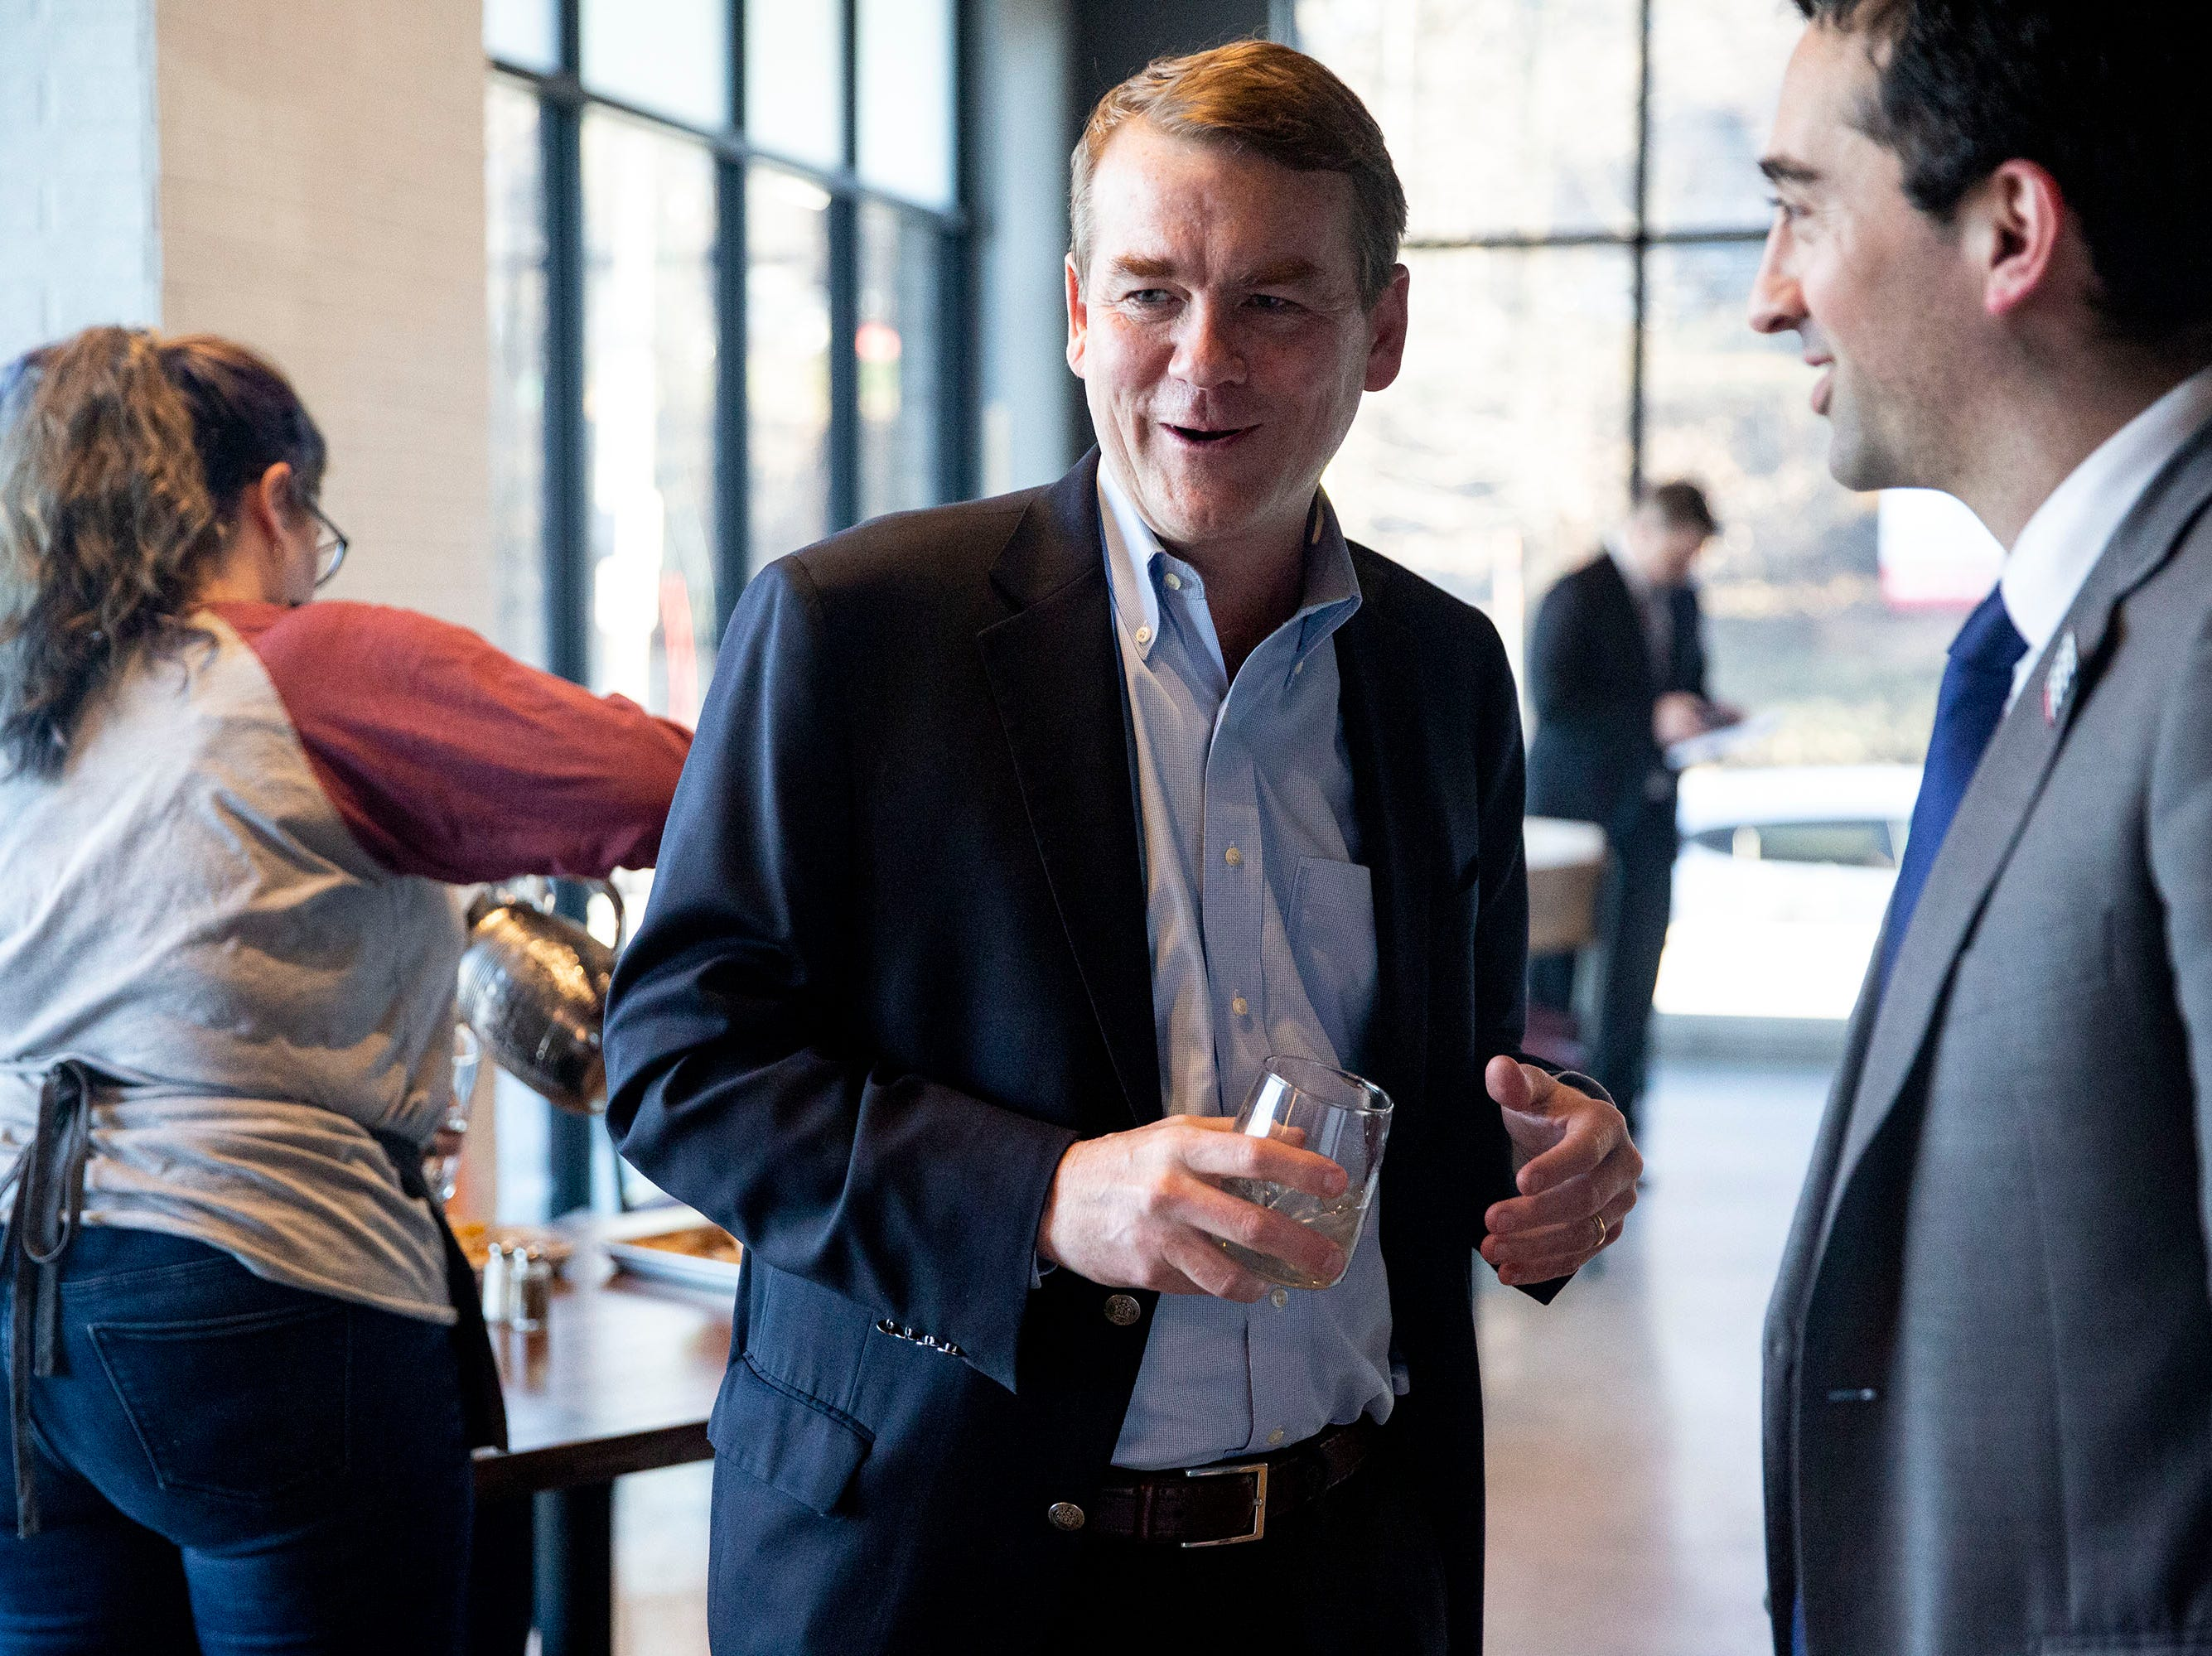 U.S. Sen. Michael Bennet, D-Colo, talks to Josh Mandelbaum, a member of the Des Moines City Council, before giving a speech and answering questions on Monday, April 8, 2019, during a meet and greet hosted by the Polk County Democrats at Teddy Maroon's in Des Moines.